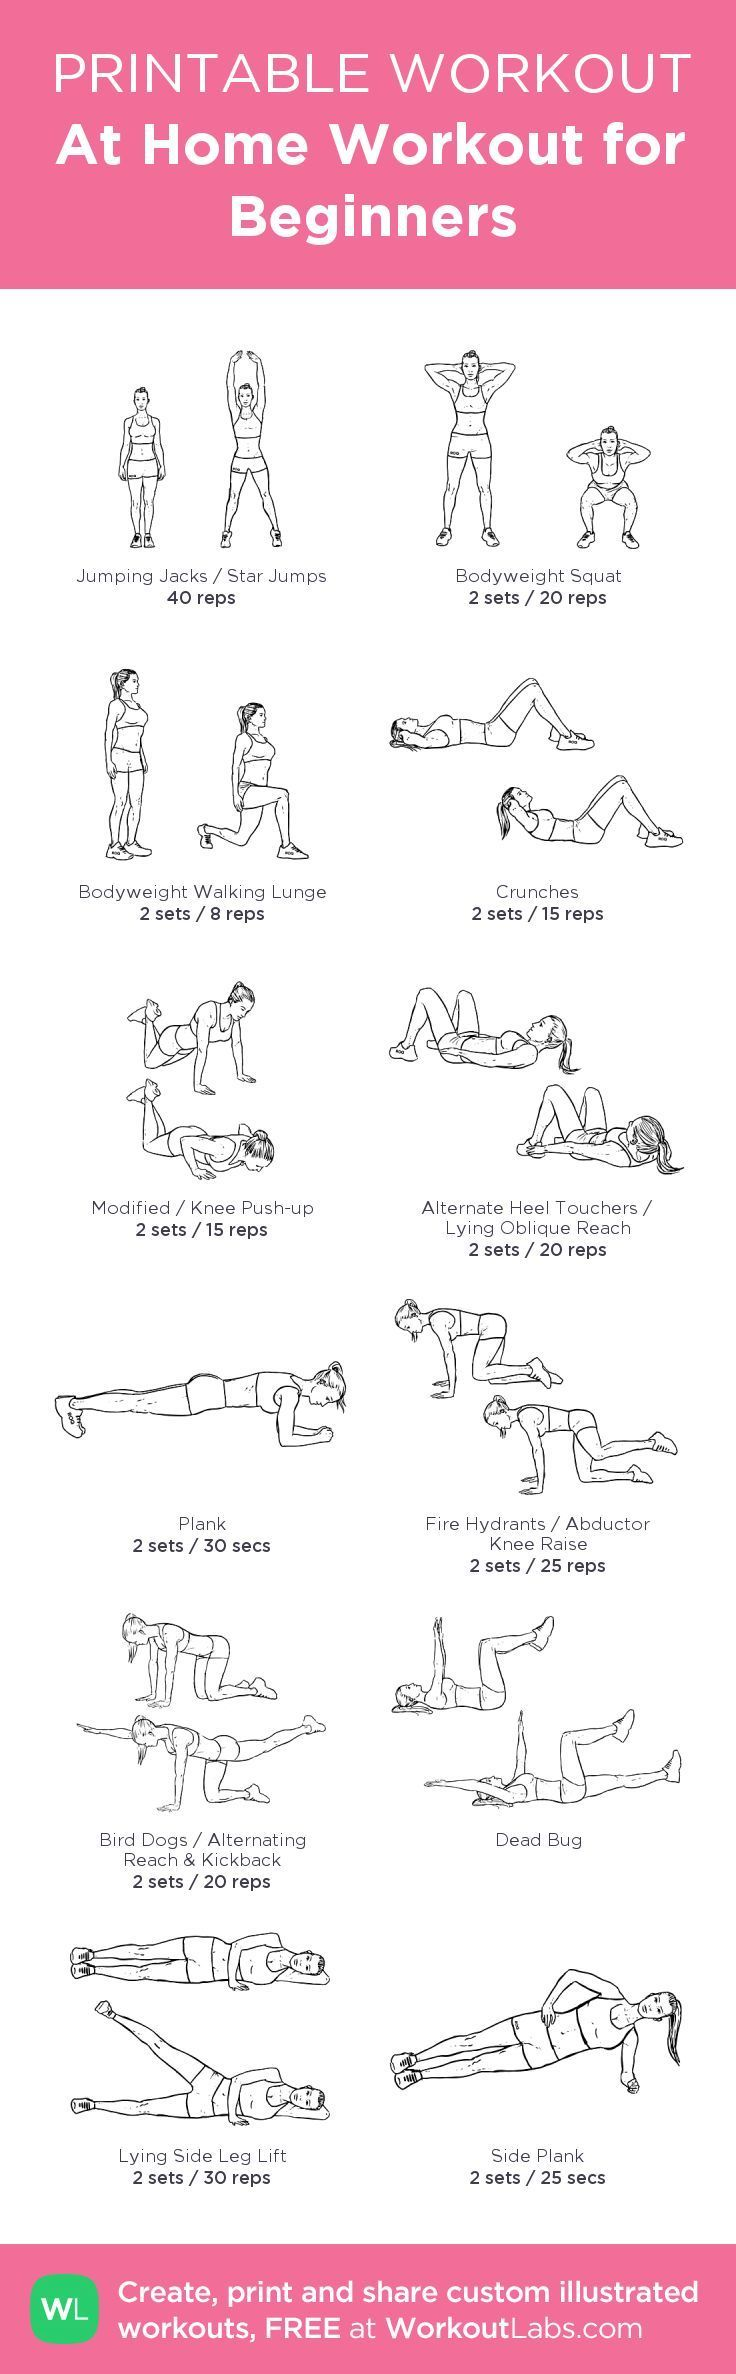 At Home Workout for Beginners: my visual workout created at http://WorkoutLabs.com • Click through to customize and download as a FREE PDF! #customworkout